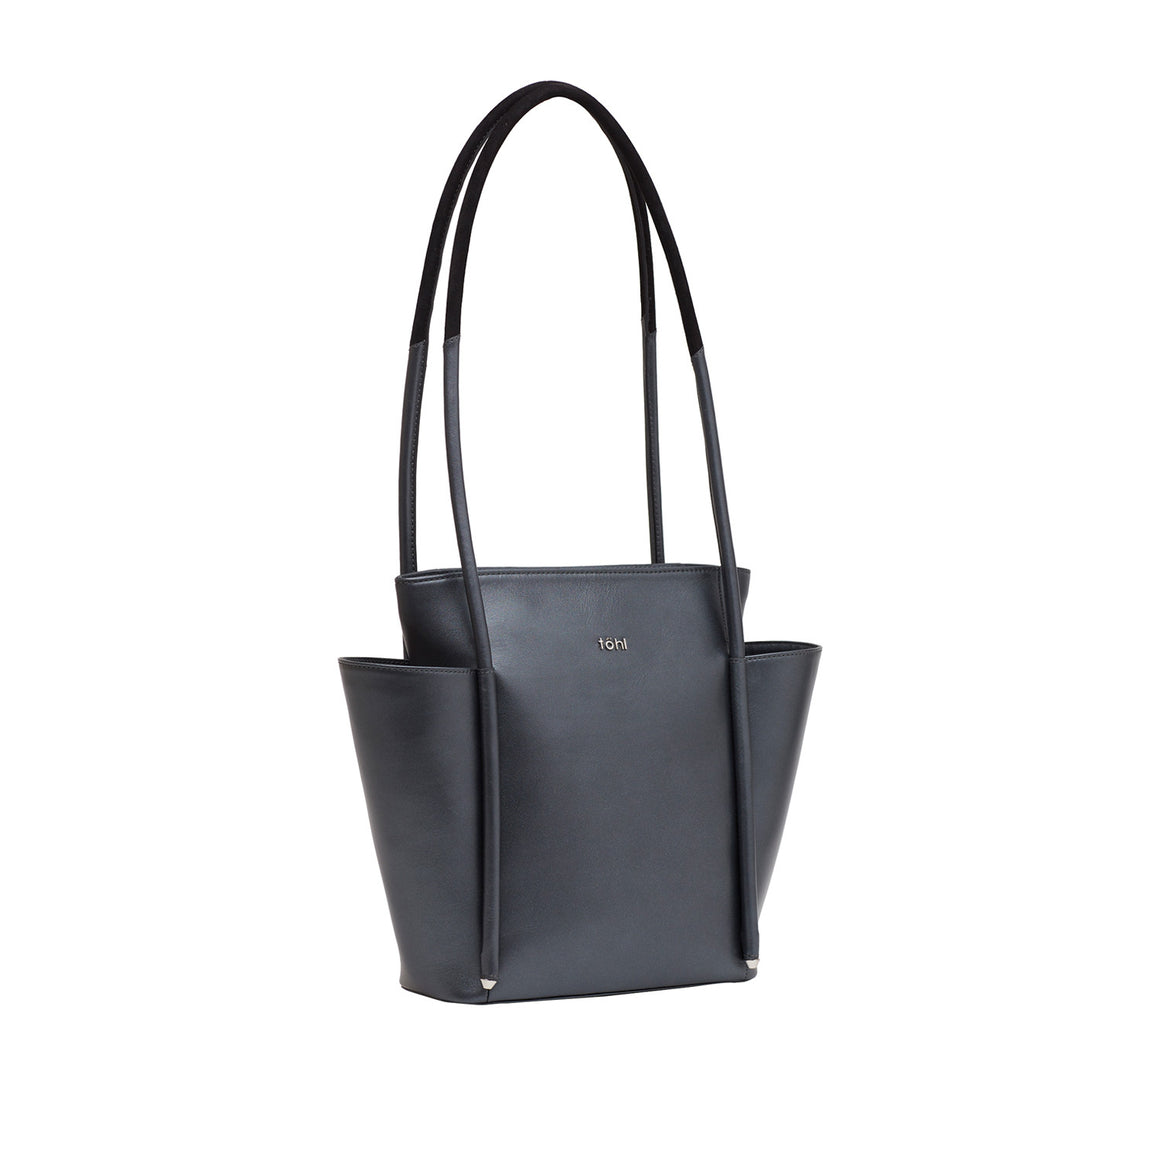 SB 0020 - TOHL PERRY WOMEN'S SHOPPER - METALLIC CARBON